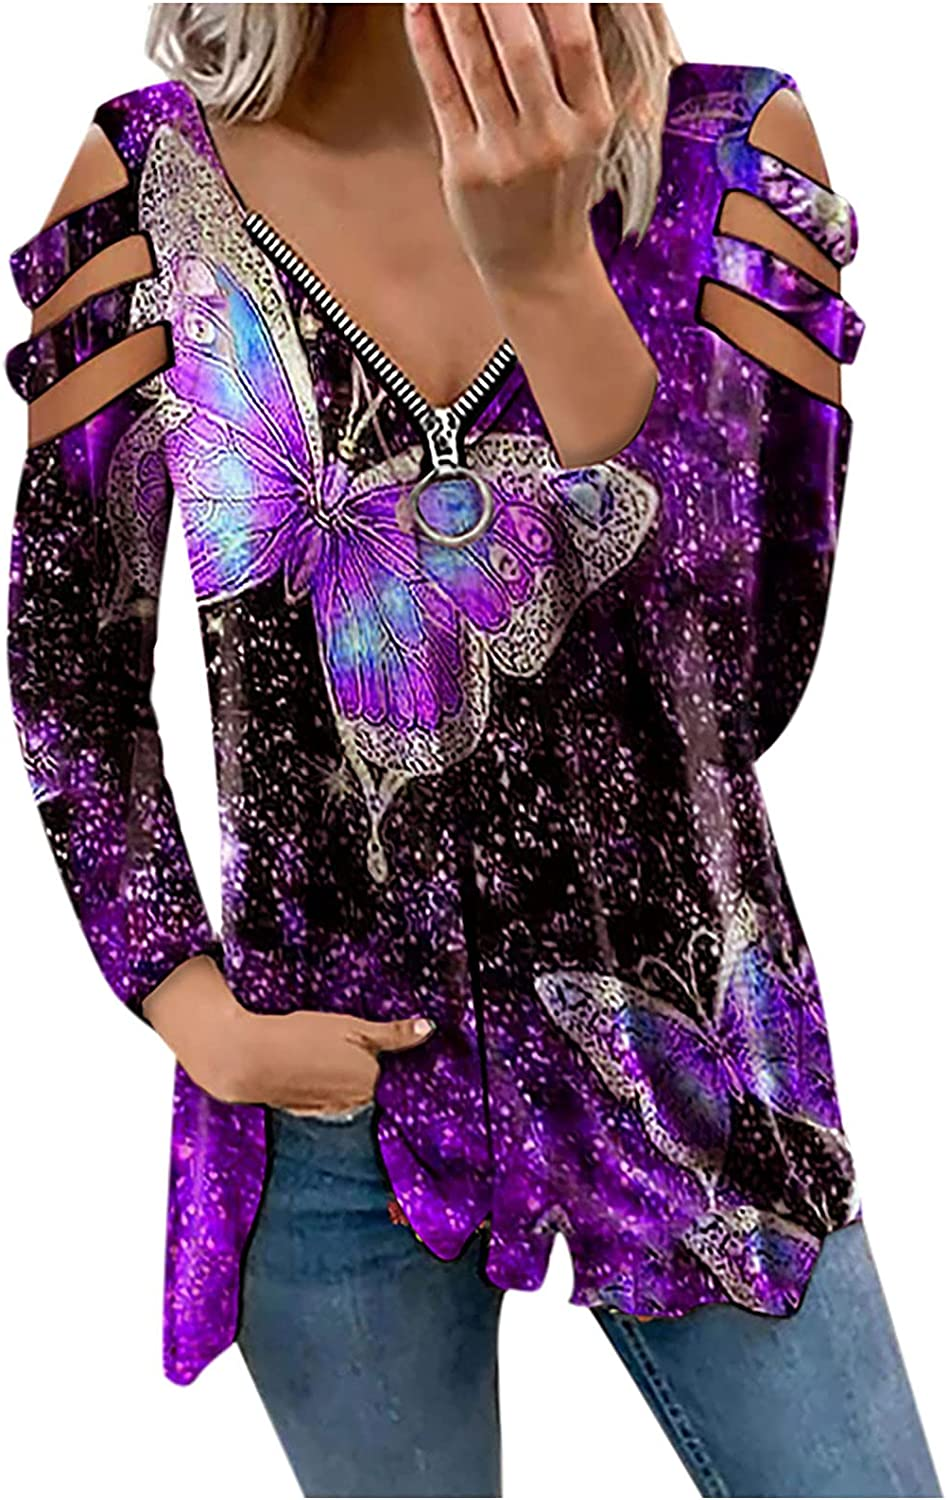 Womens Tops Women's Casual Zipper Ou New color Hollow Long Printing Sleeve Many popular brands